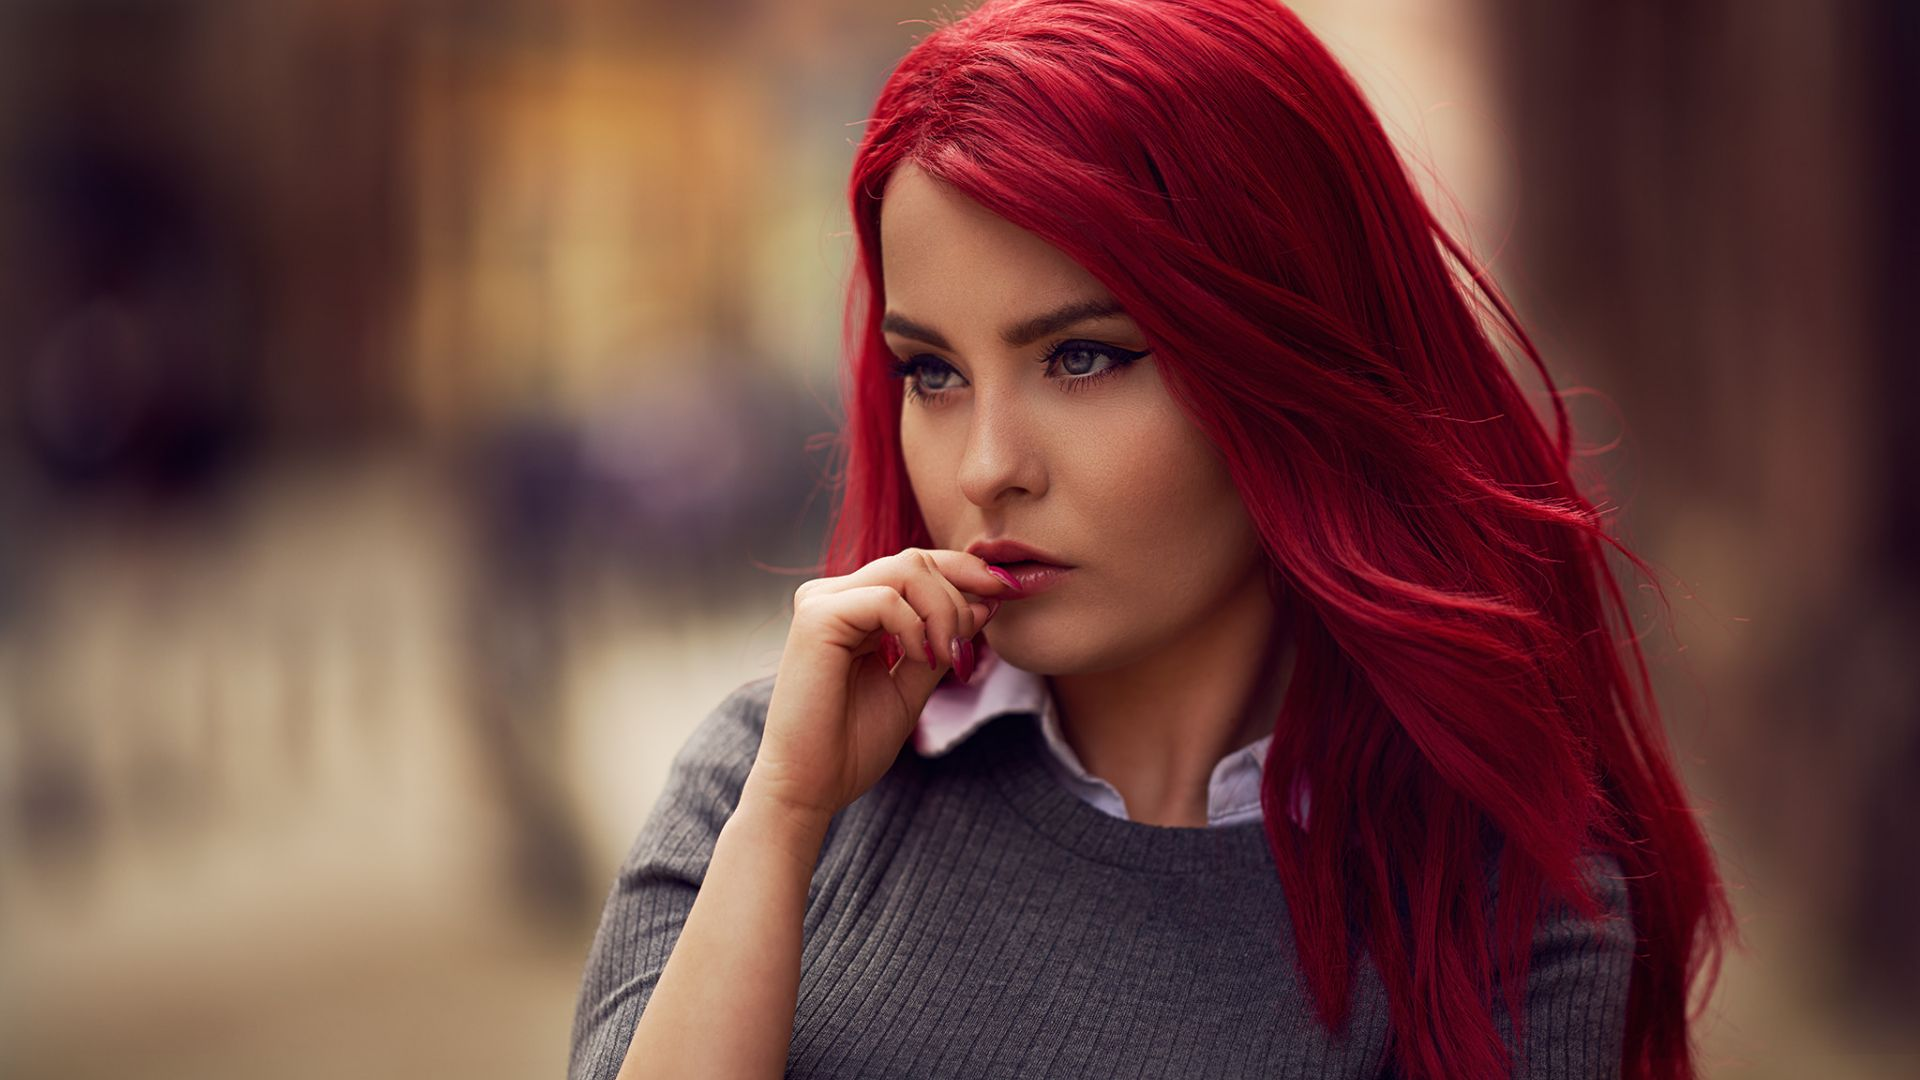 Colored hair, red, girl model